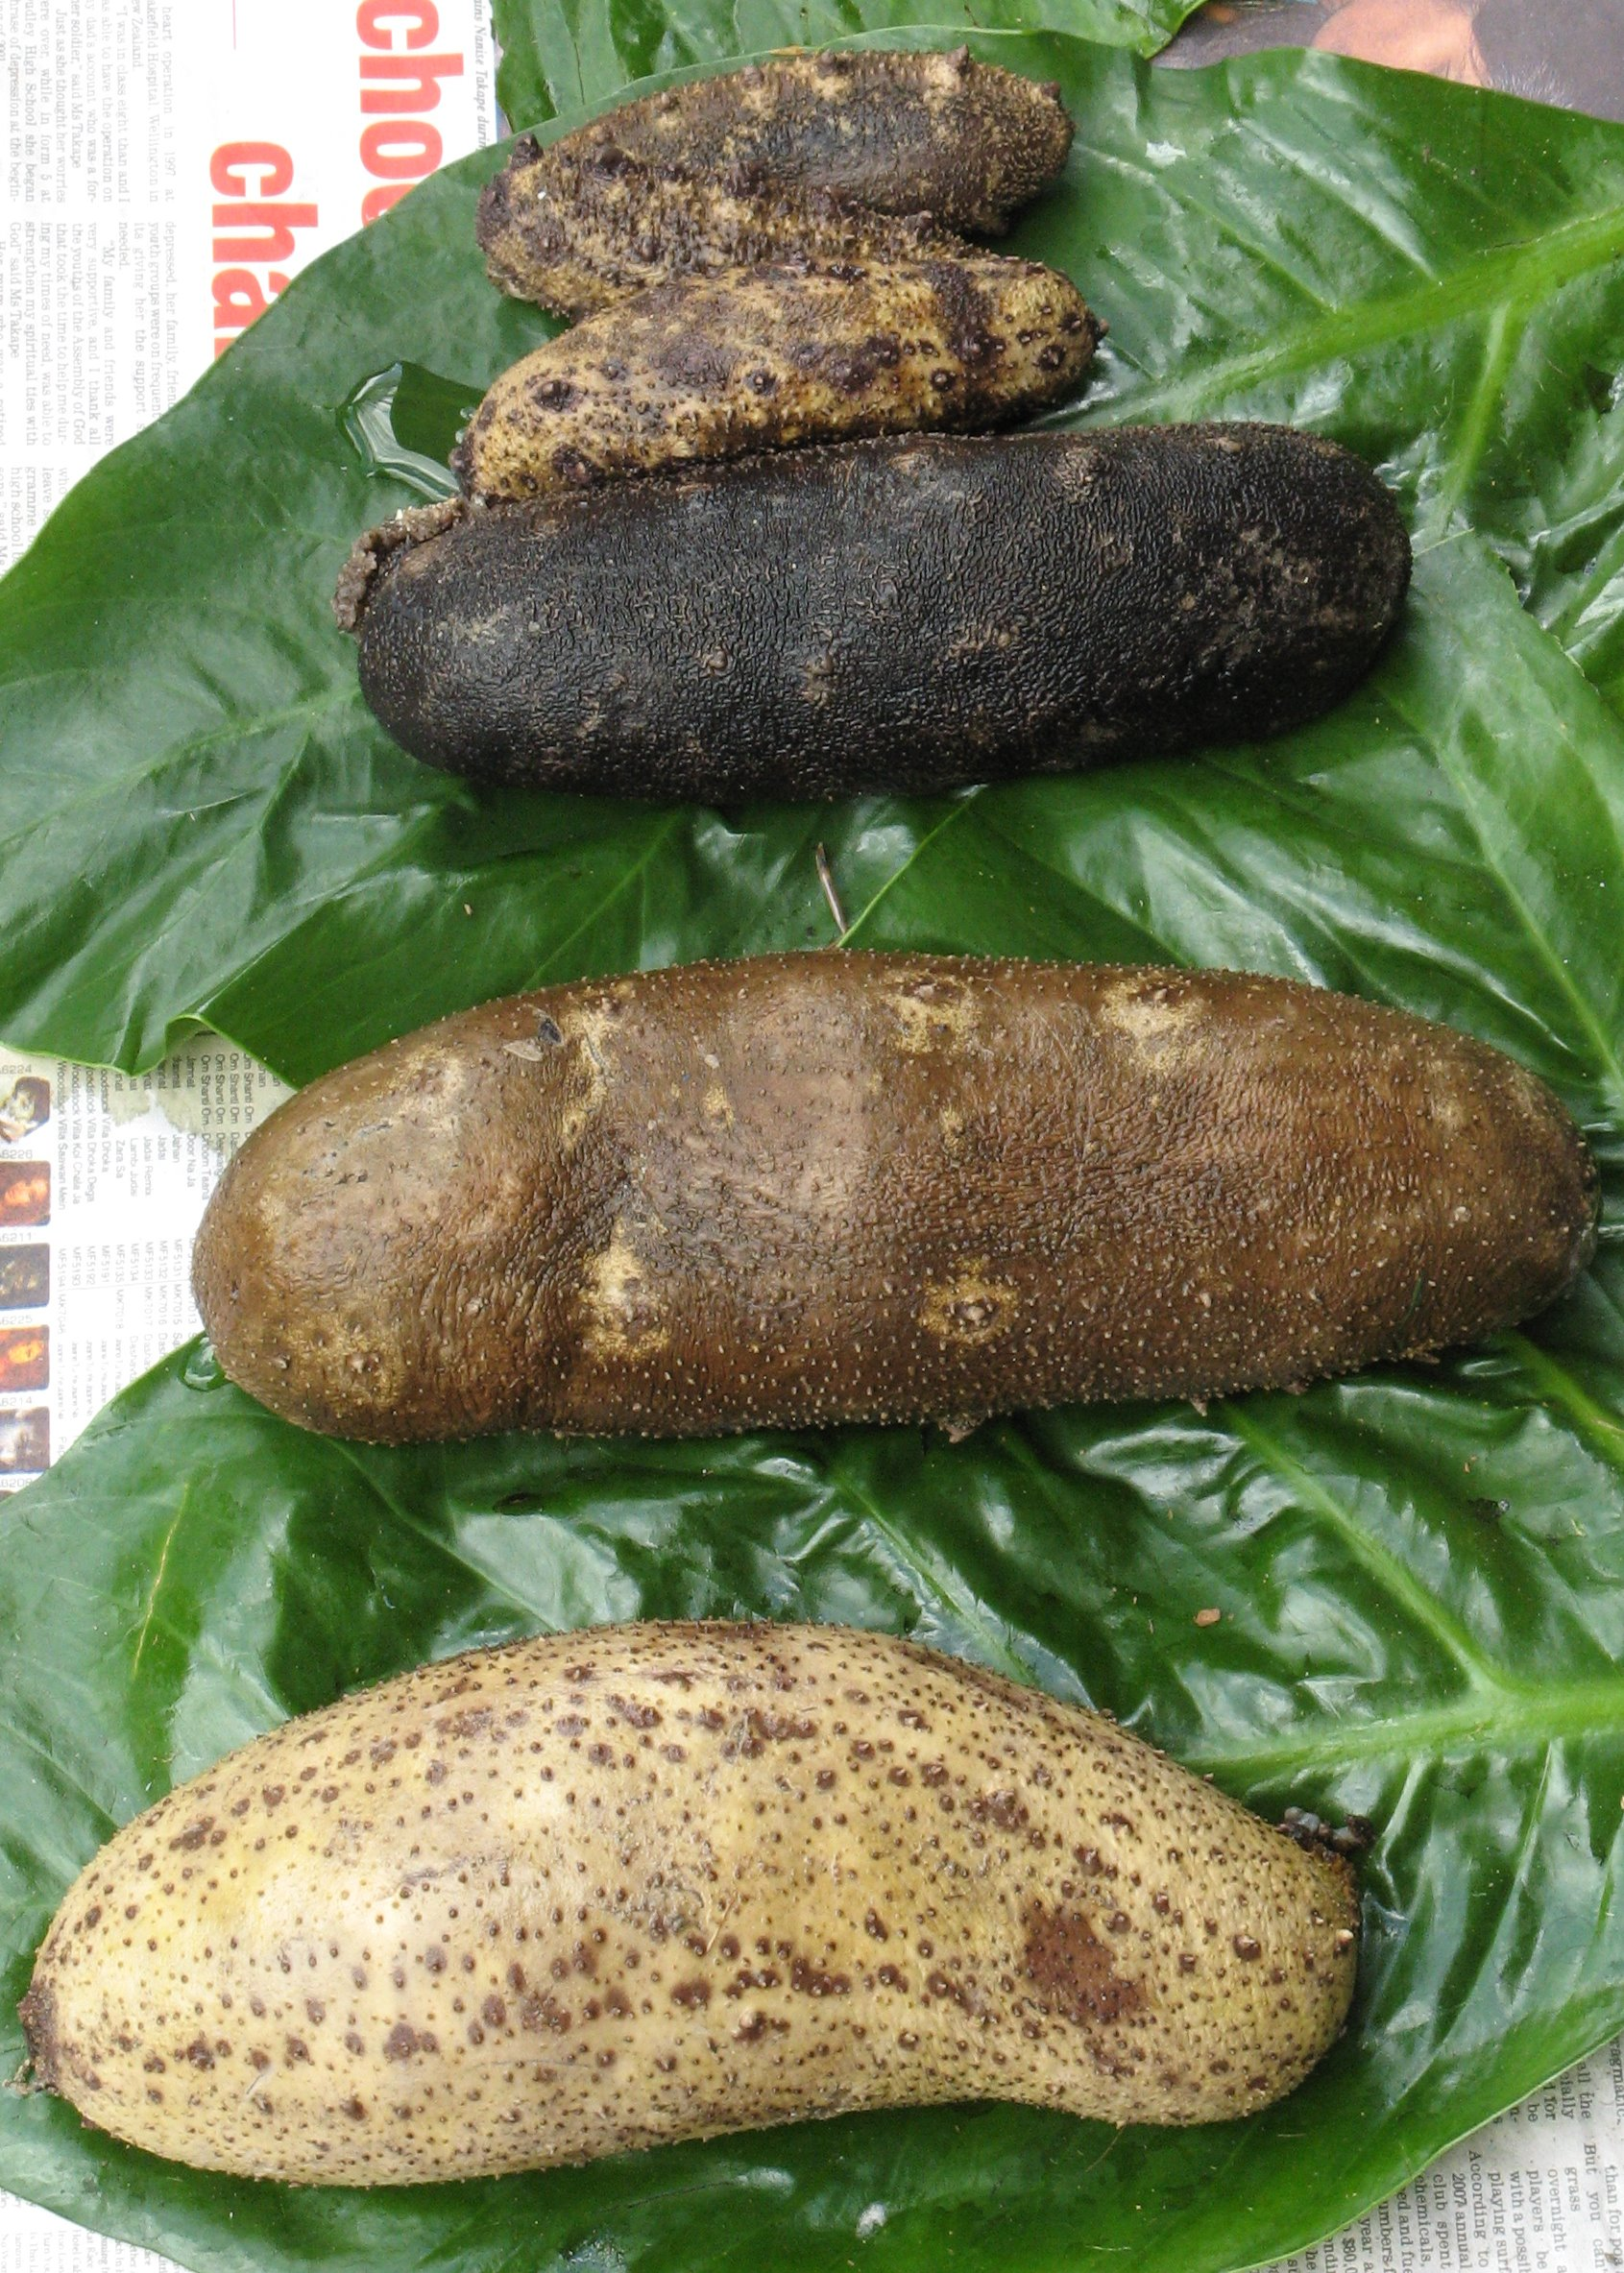 Sea cucumber (Holothurian sp.) on sale in local Suva market